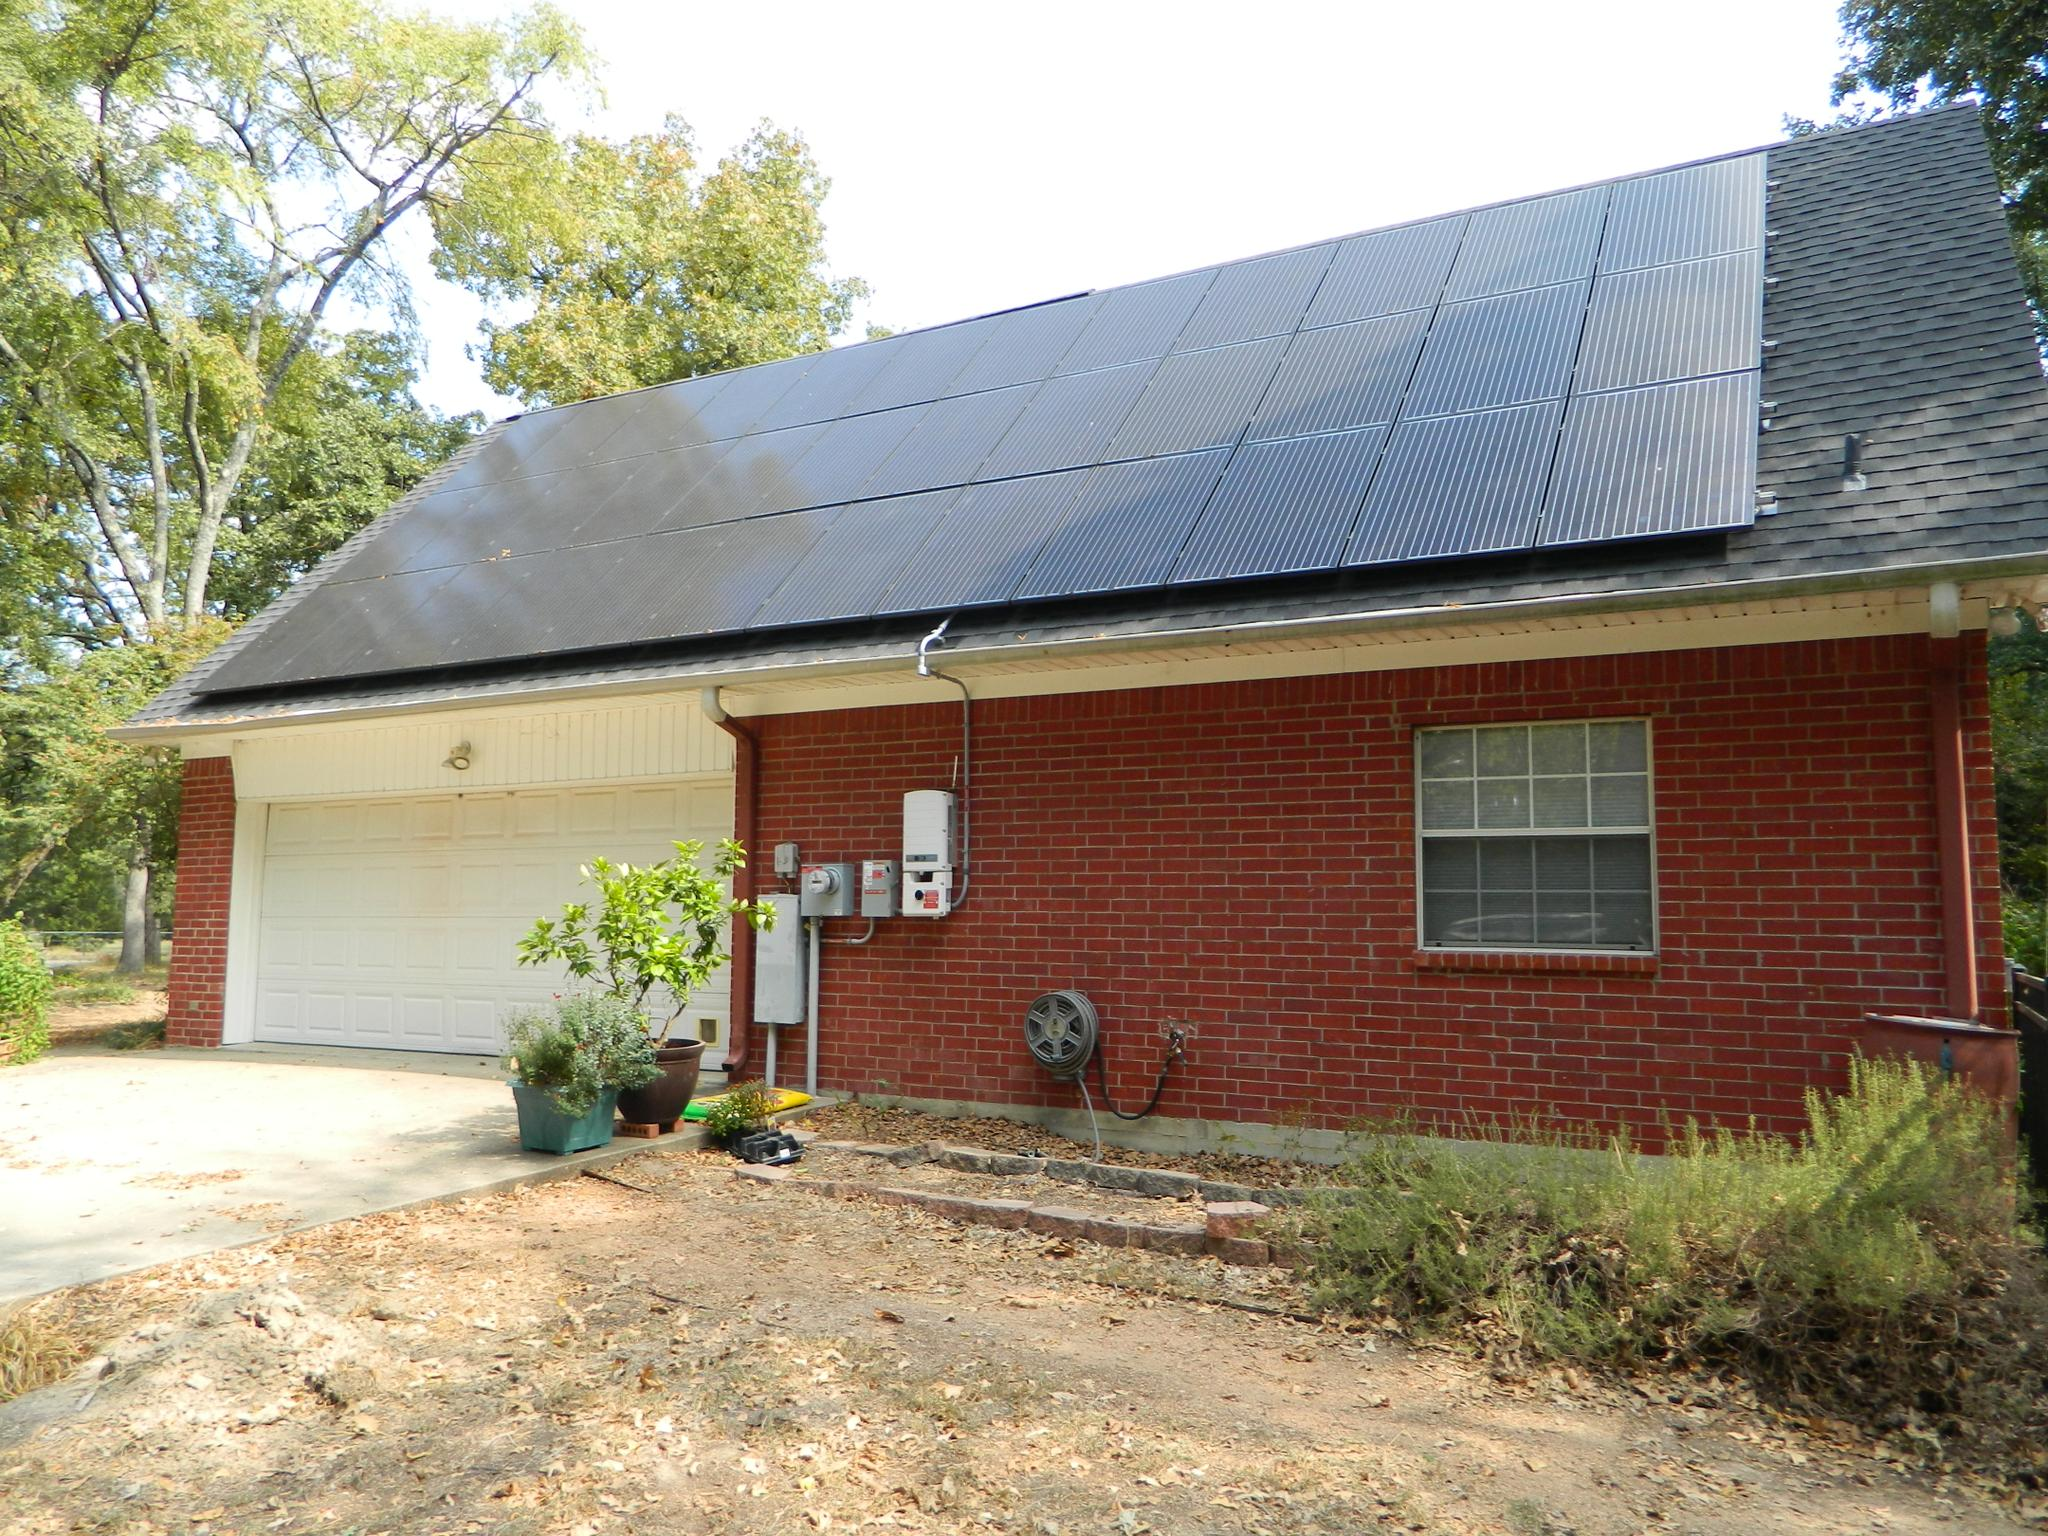 Solarview Inc Profile And Reviews 2019 Energysage